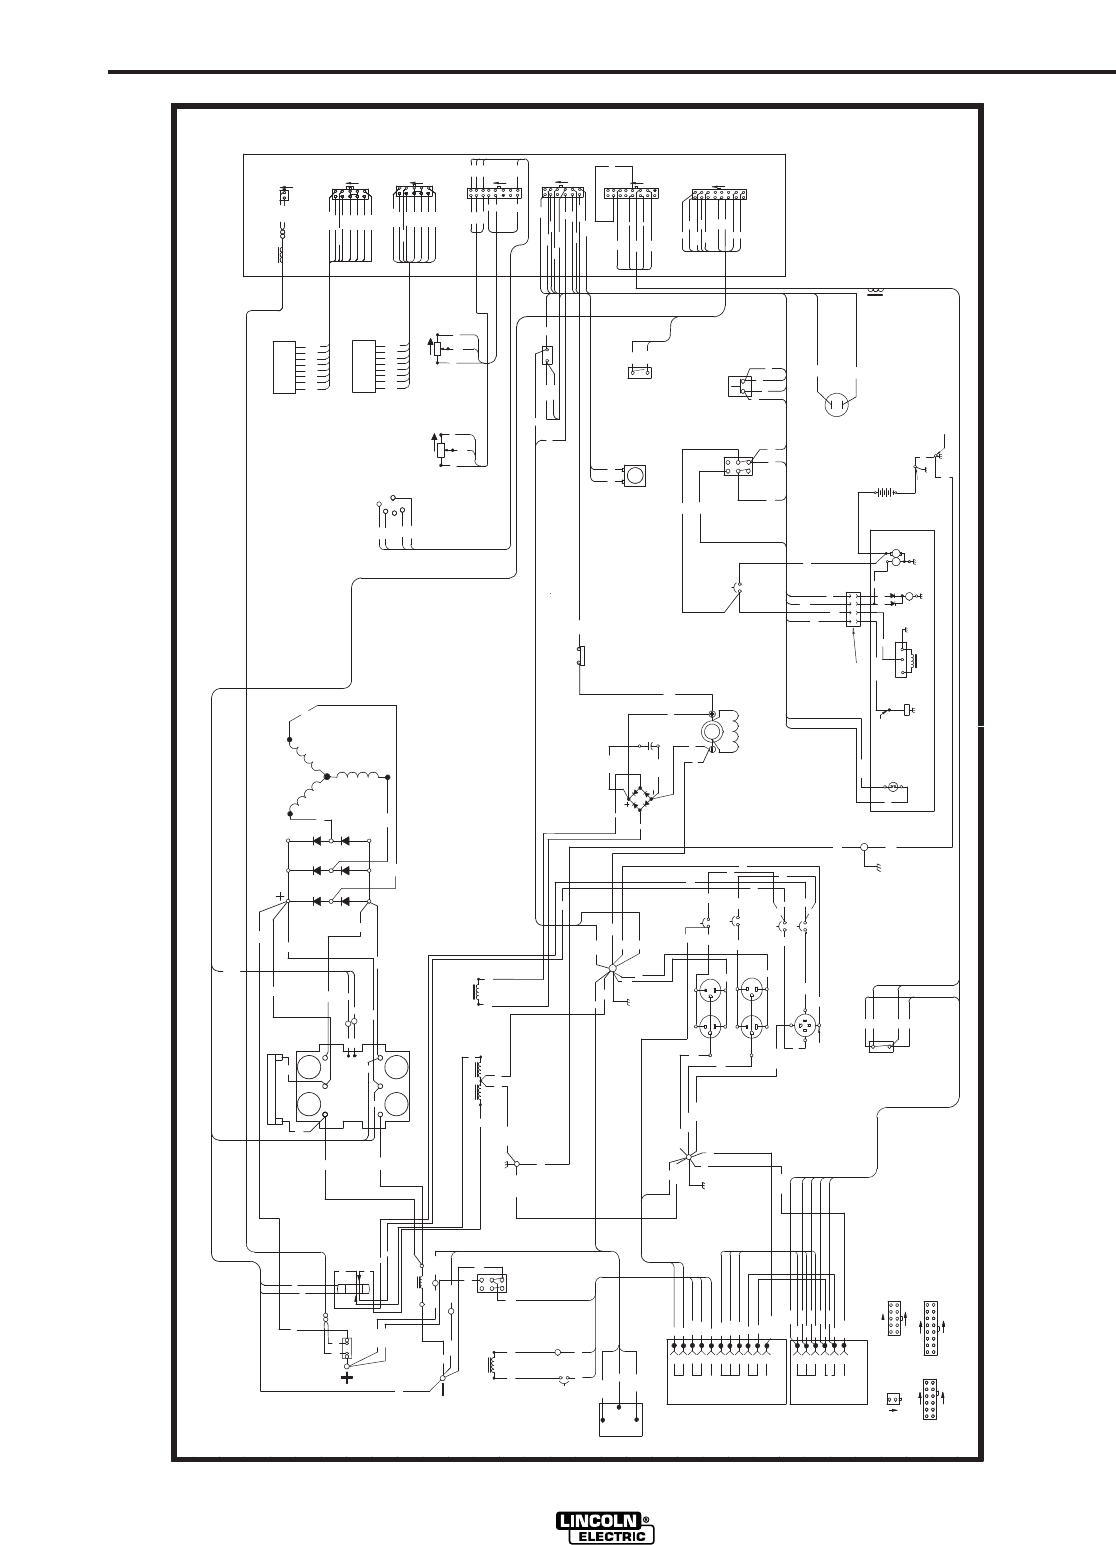 Lincoln 225 Arc Welder Wiring Diagram Lincoln Electric AC 225 S – Lincoln 225 S Wiring Diagram